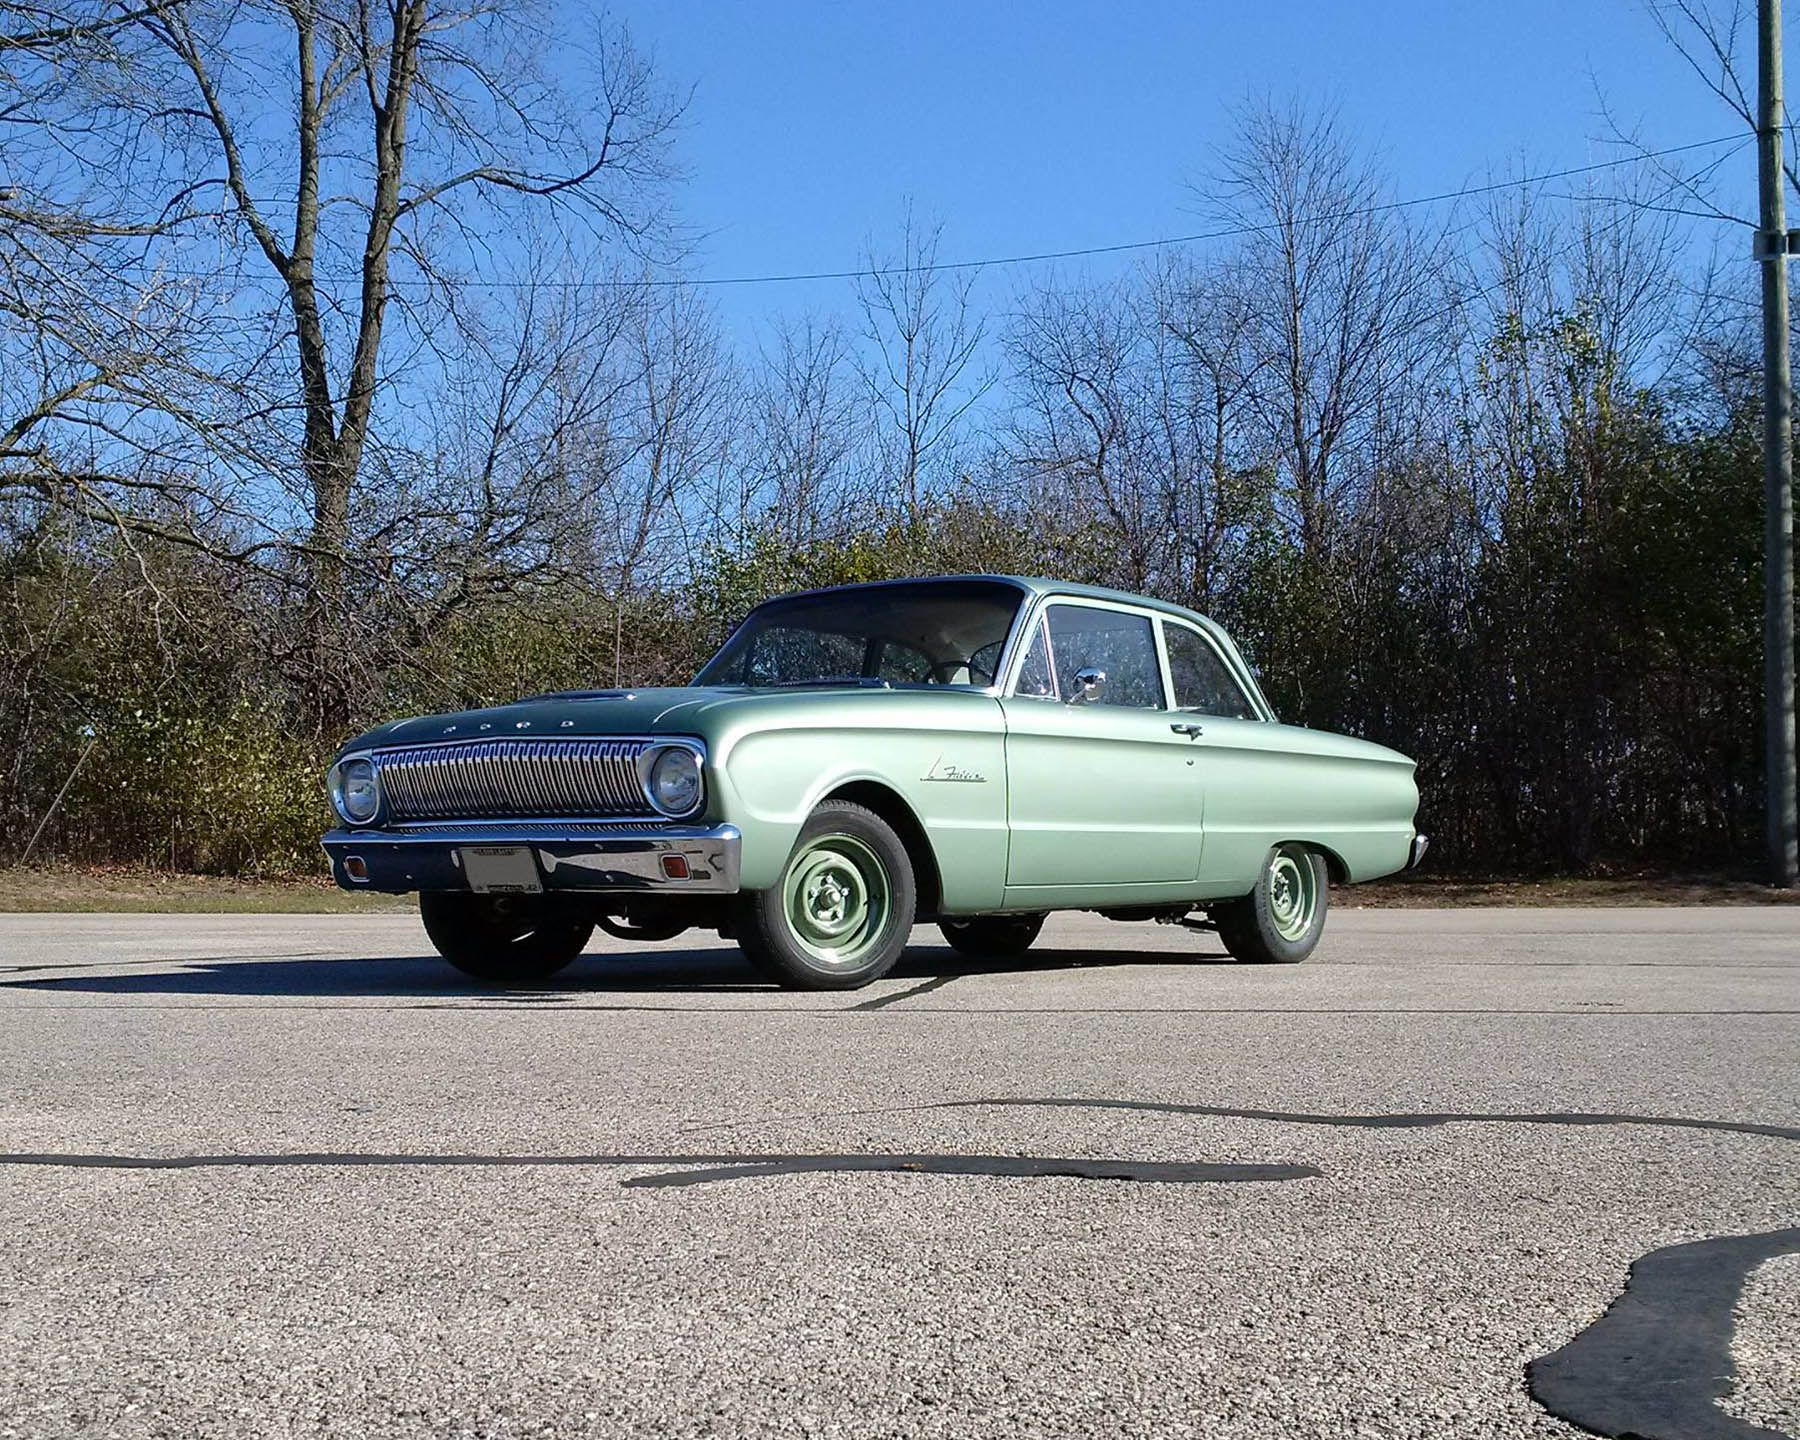 1962 Ford Falcon With A Turbo Duratec Inline Four Ford Falcon